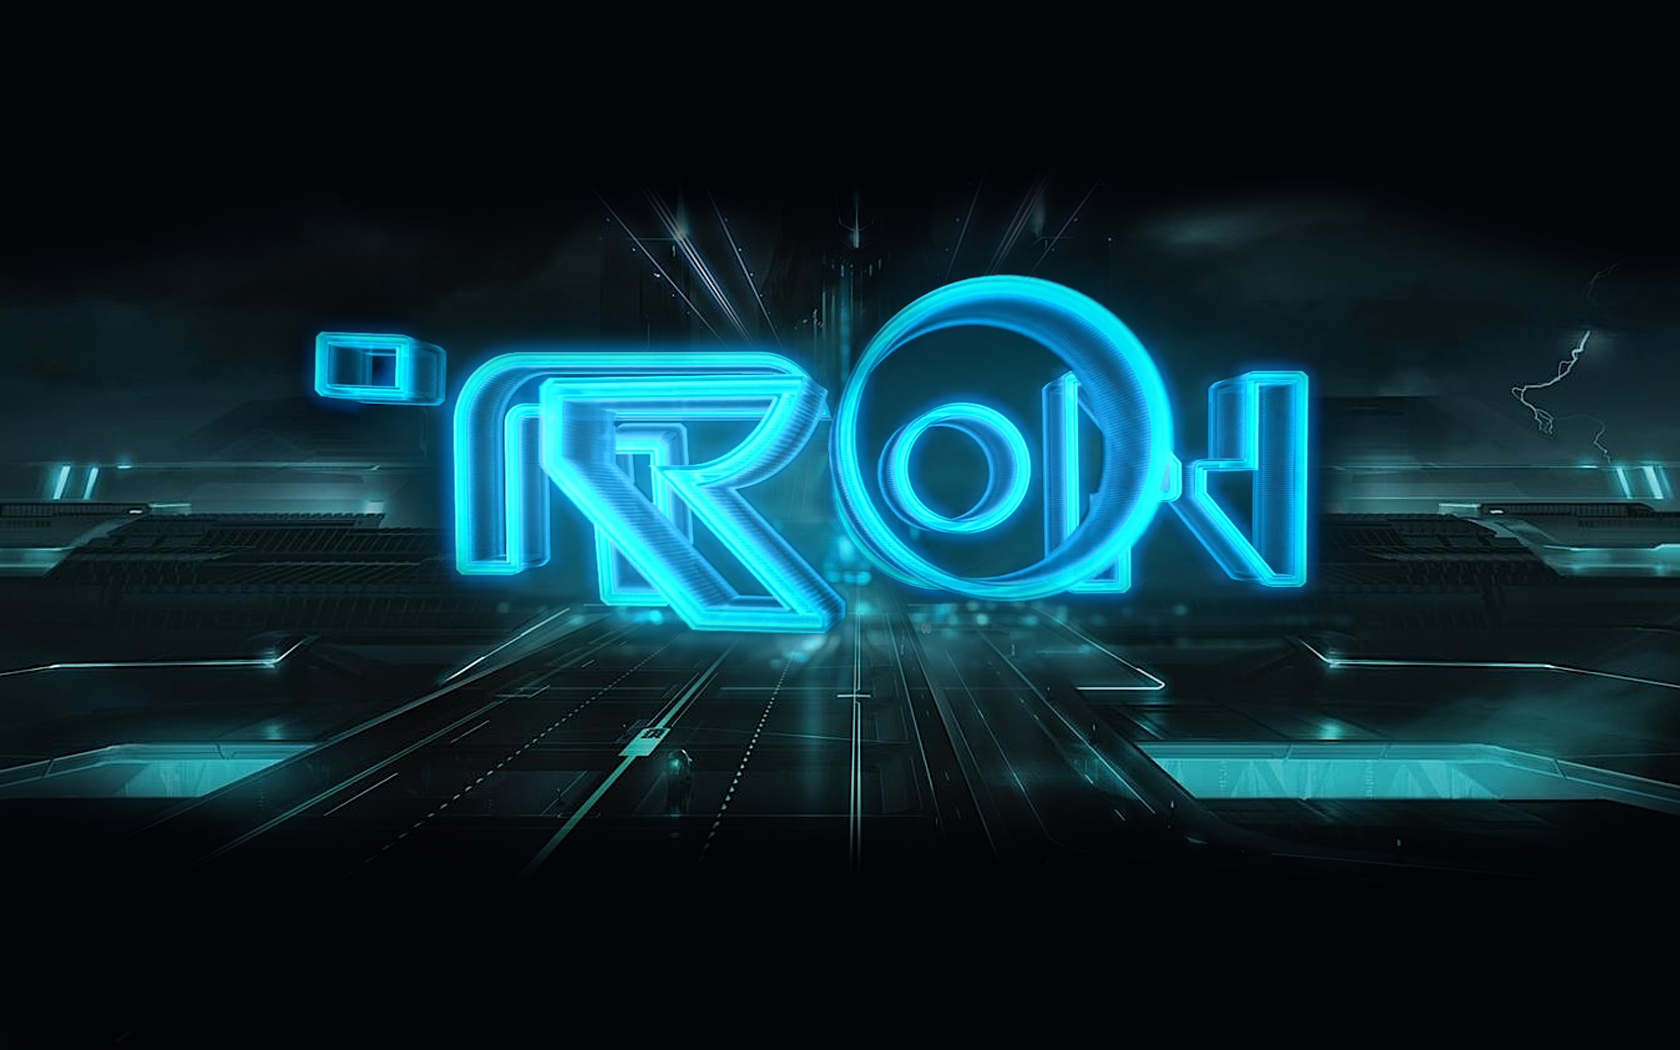 Tron Wallpaper Tron Wallpaper HD 1680x1050